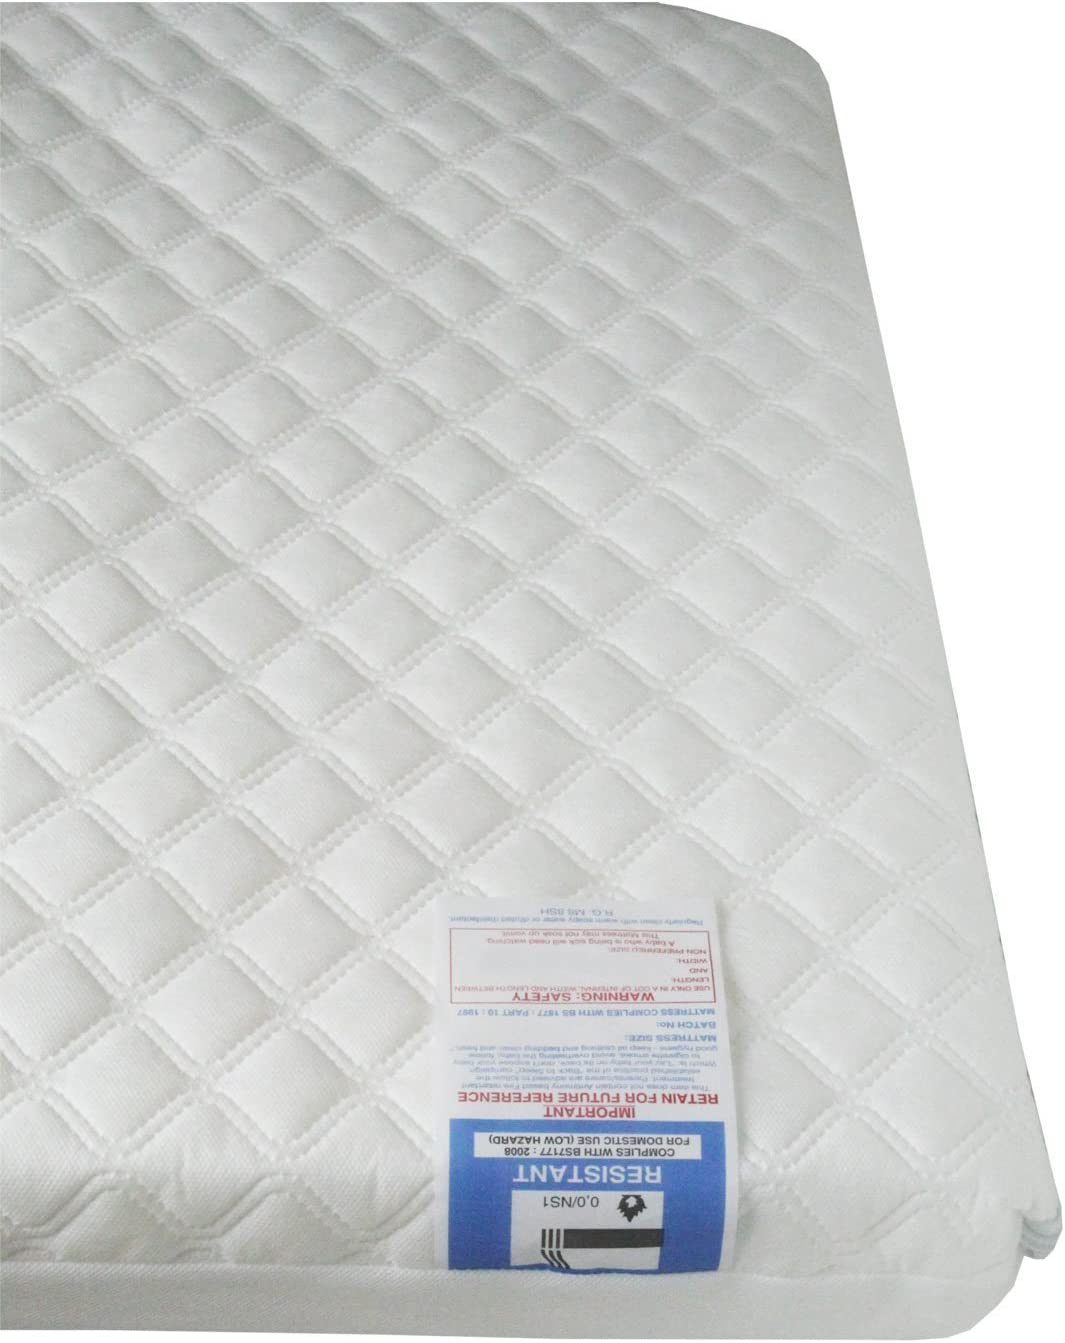 Gax New Baby Travel Cot Foam//Mattress 95x65x7 cm Extra Thick Quilted Anti allergenic Fits Most Graco//M/&P Toddler Cots Waterproof Cover Breathable